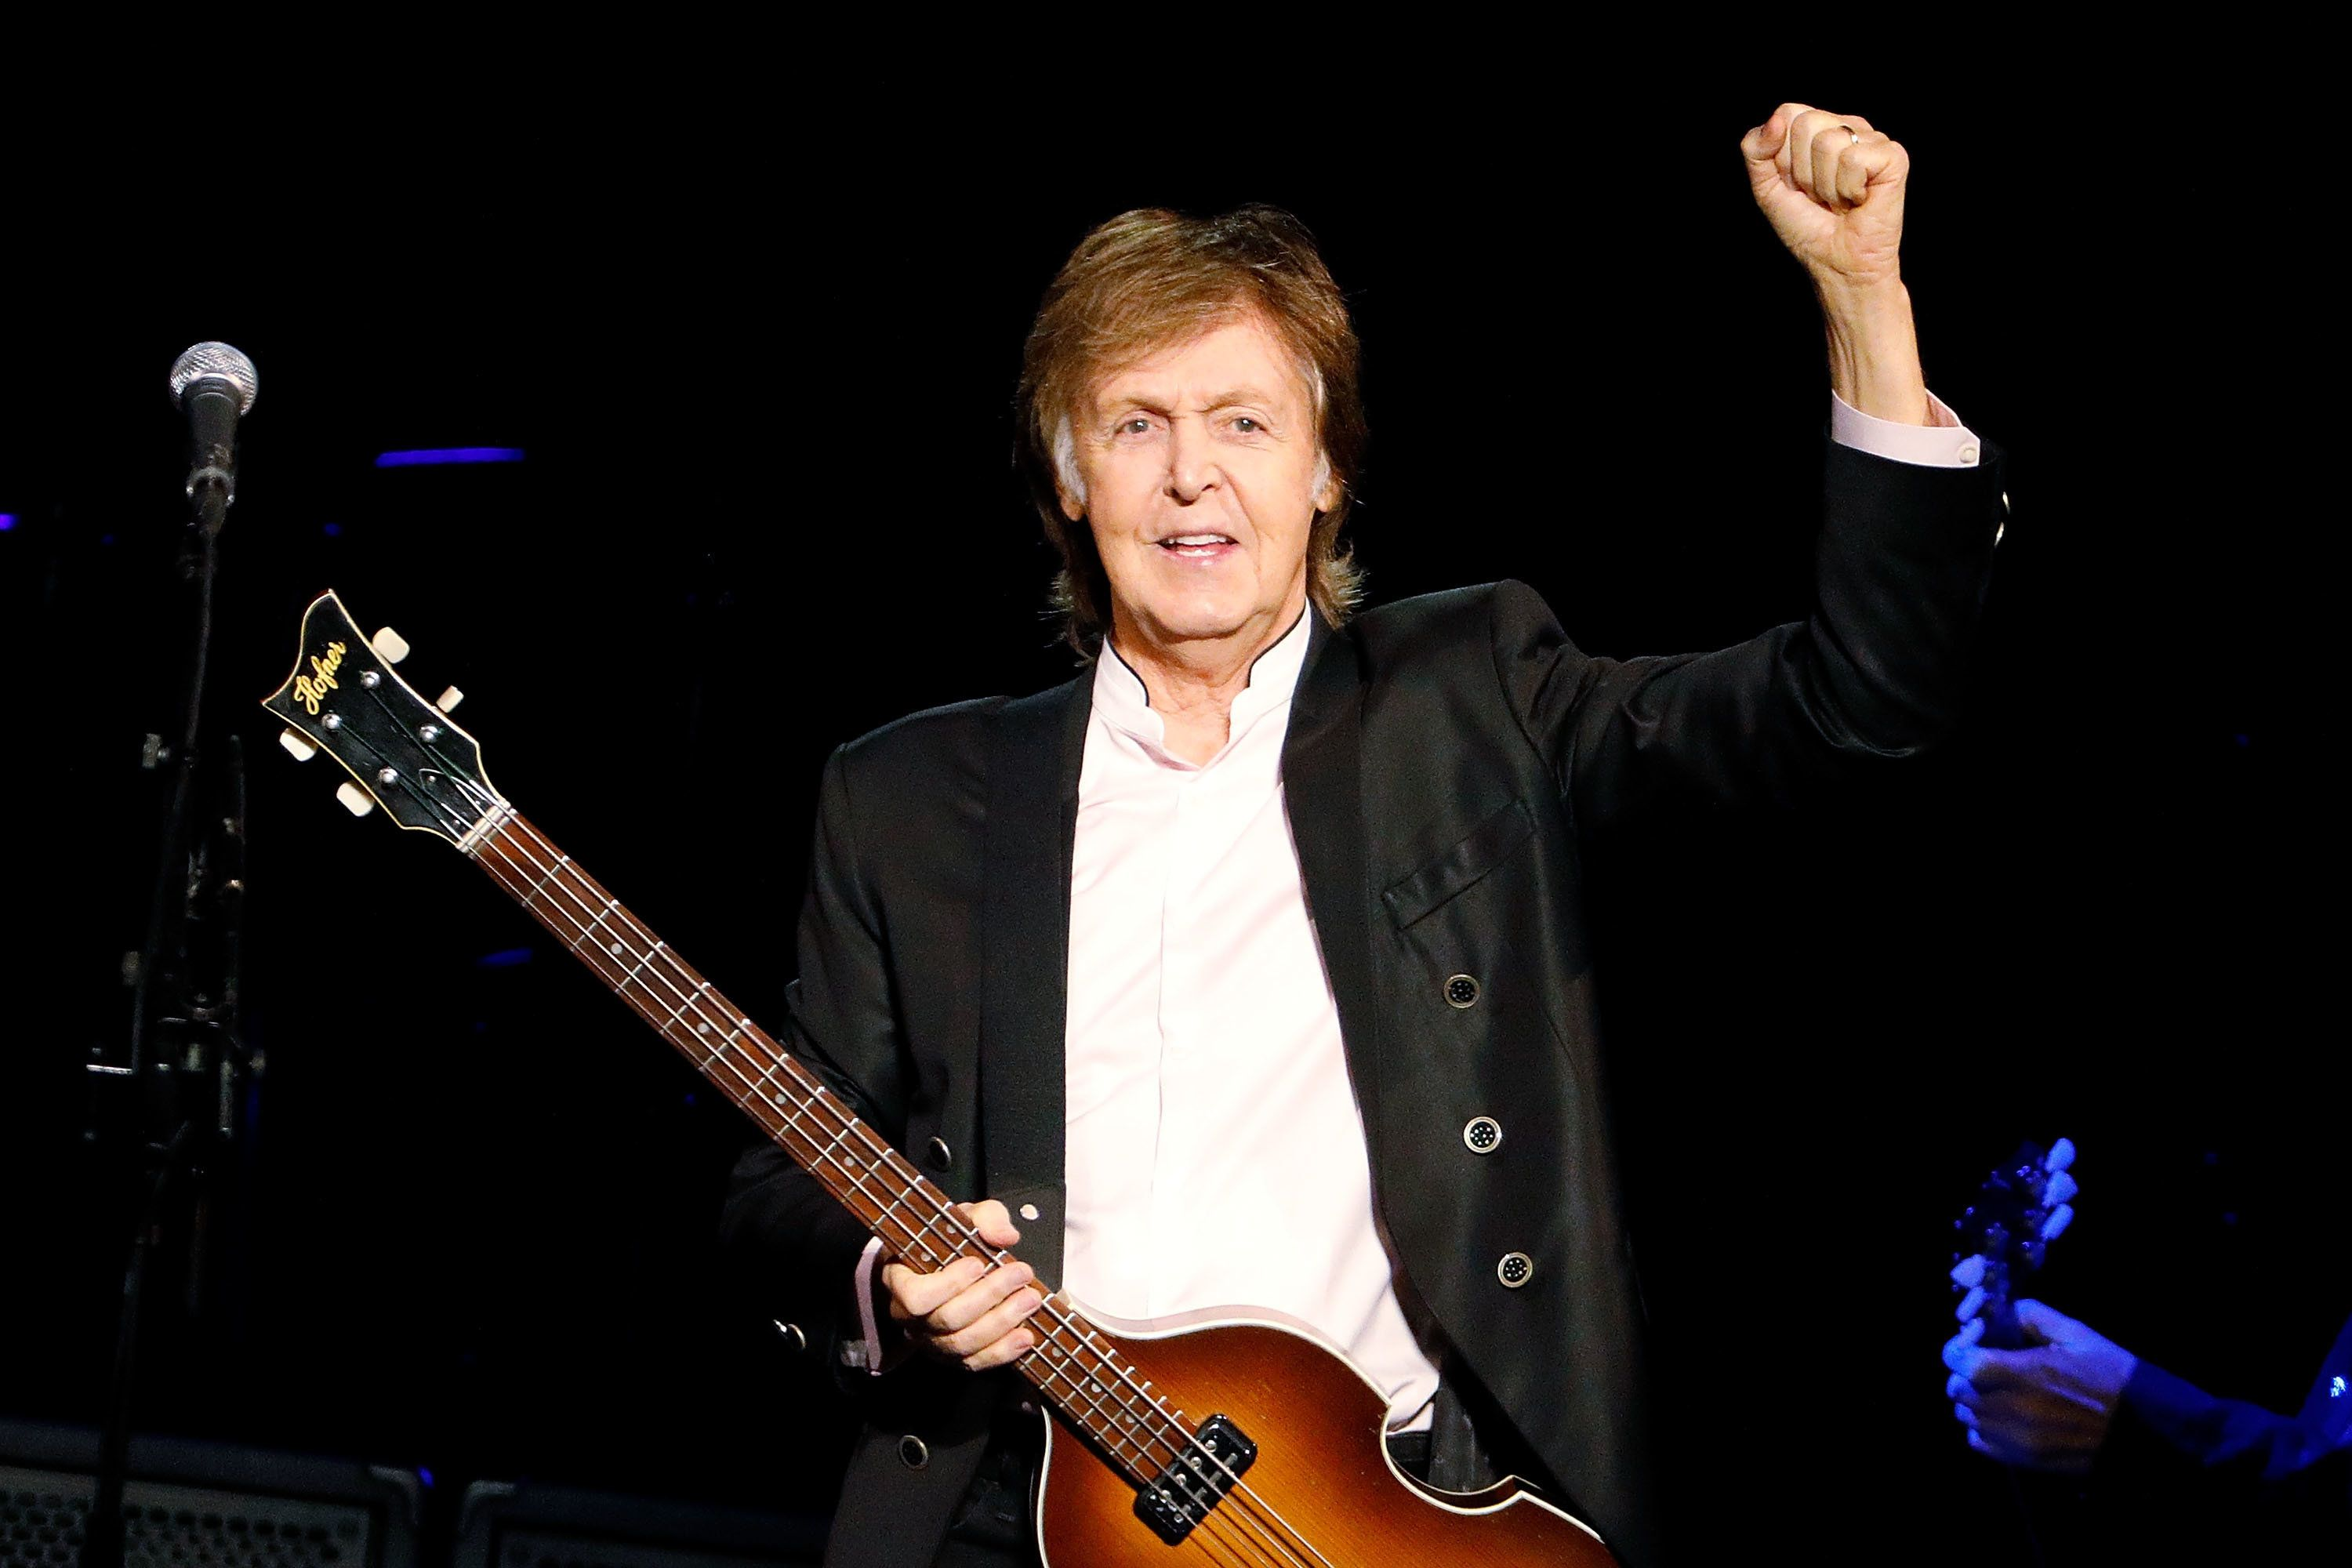 Paul McCartney Said He And John Lennon Masturbated Together With Friends